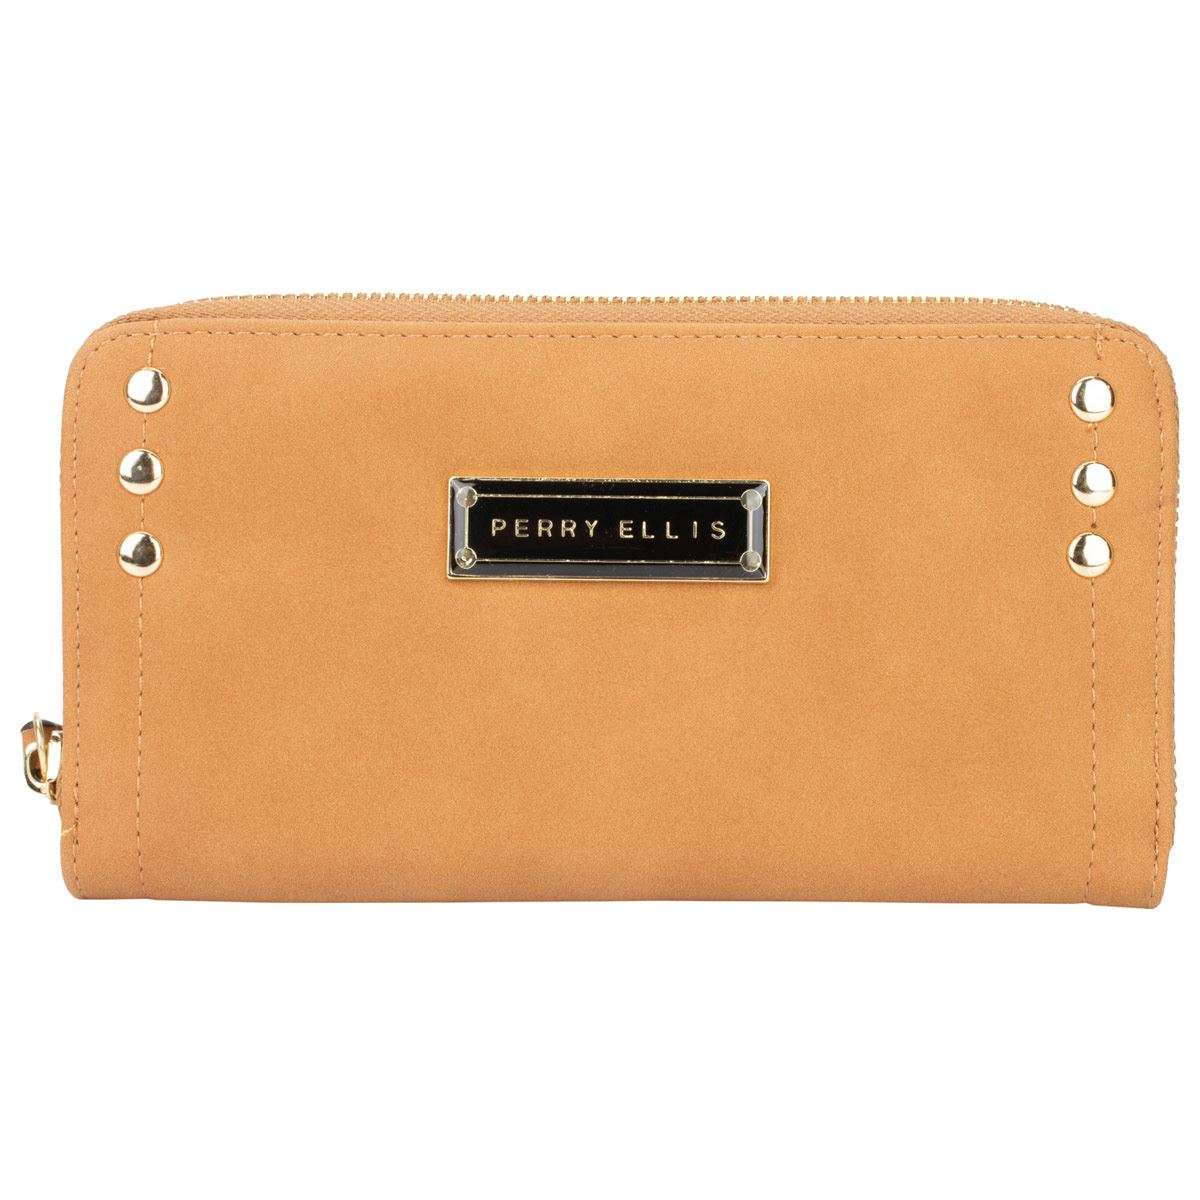 c9ba26e81 Cartera Perry Ellis zip around